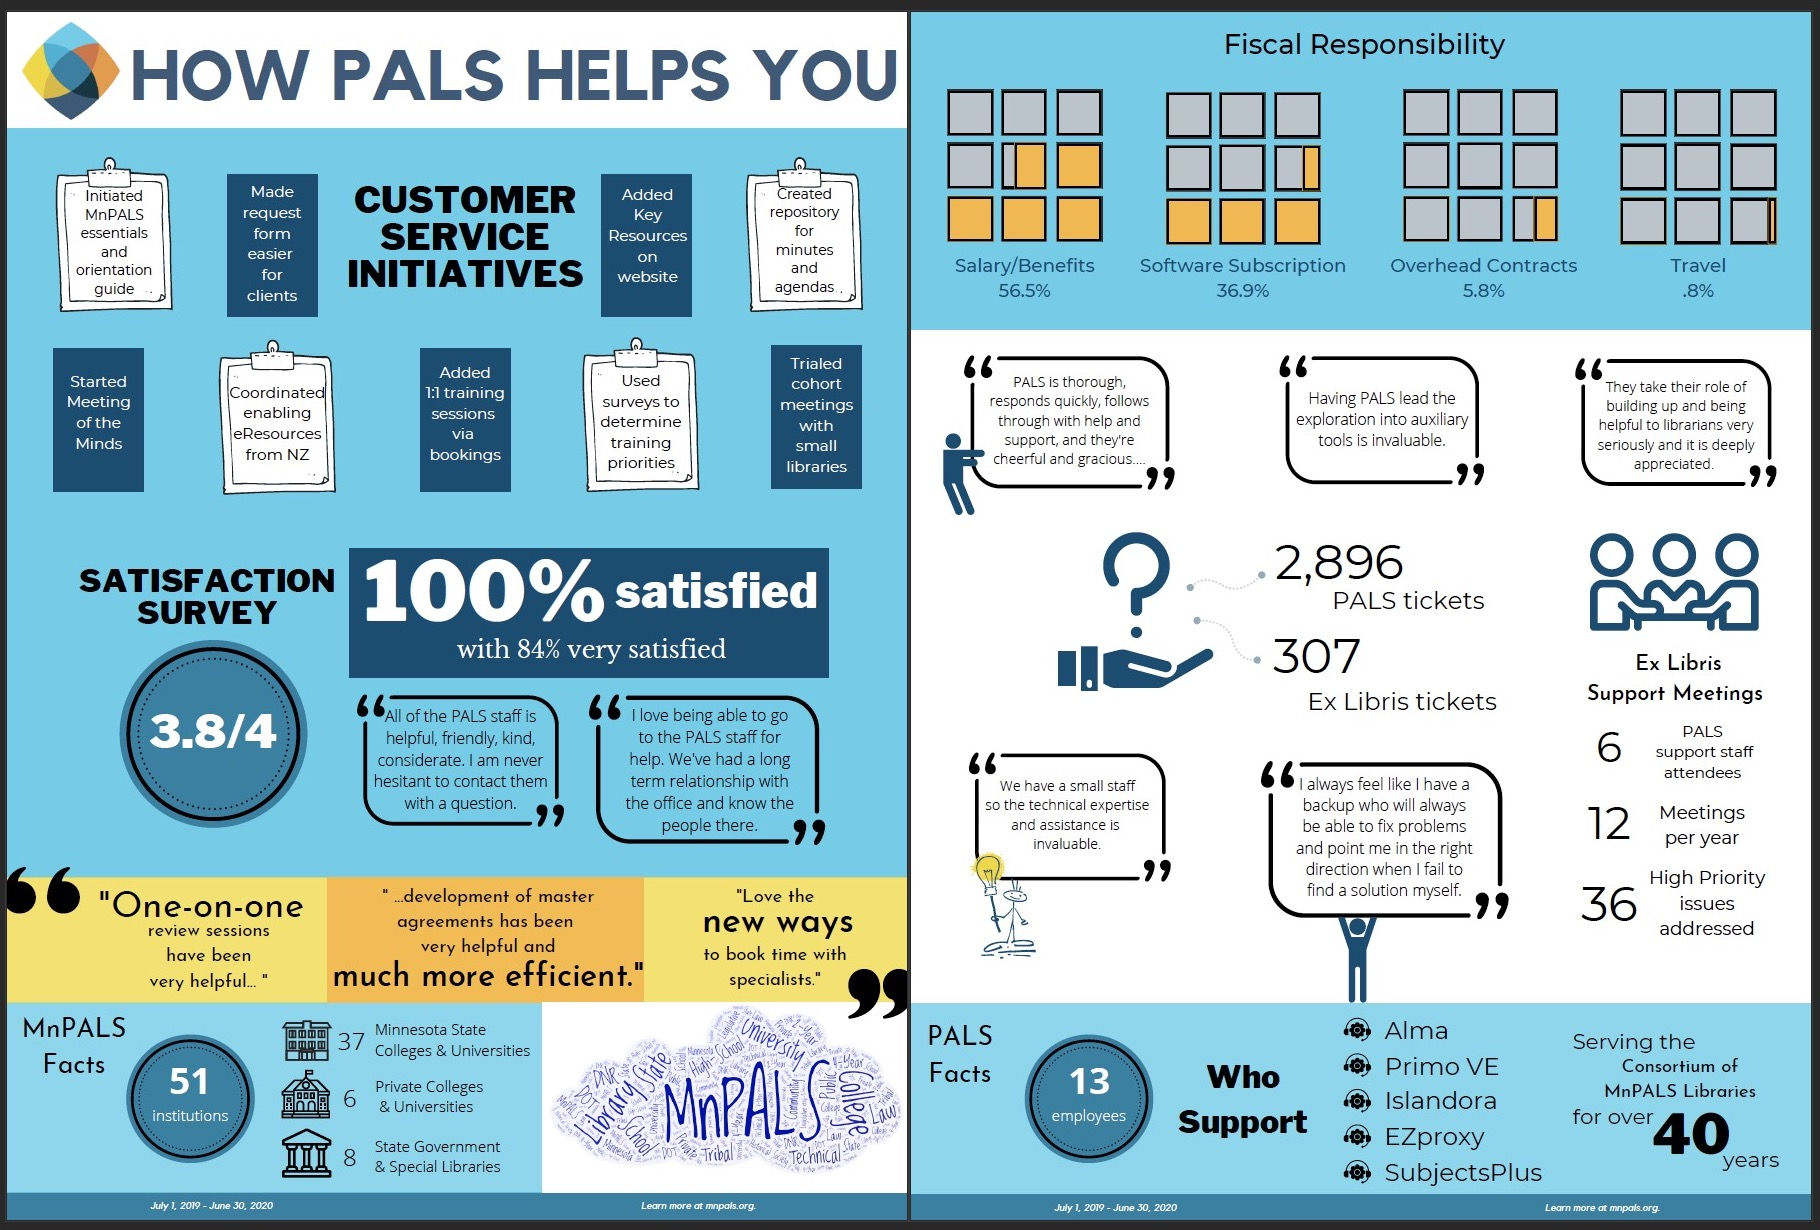 How PALS Helps infographic